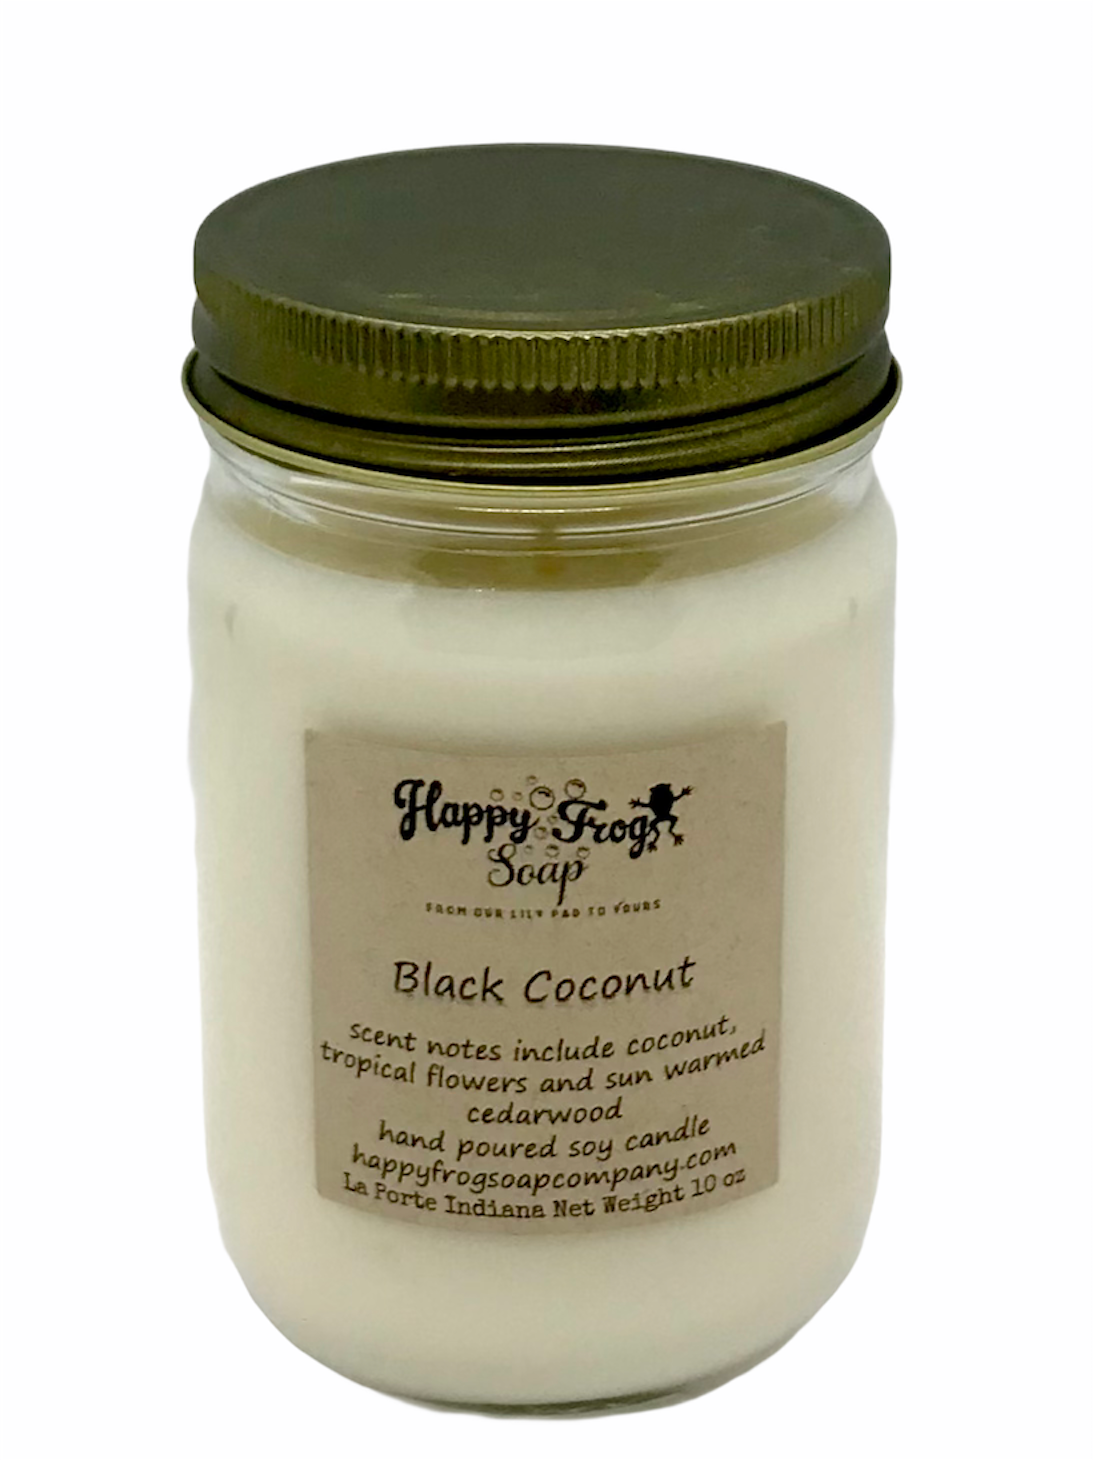 Black Coconut Soy Candle 10 oz